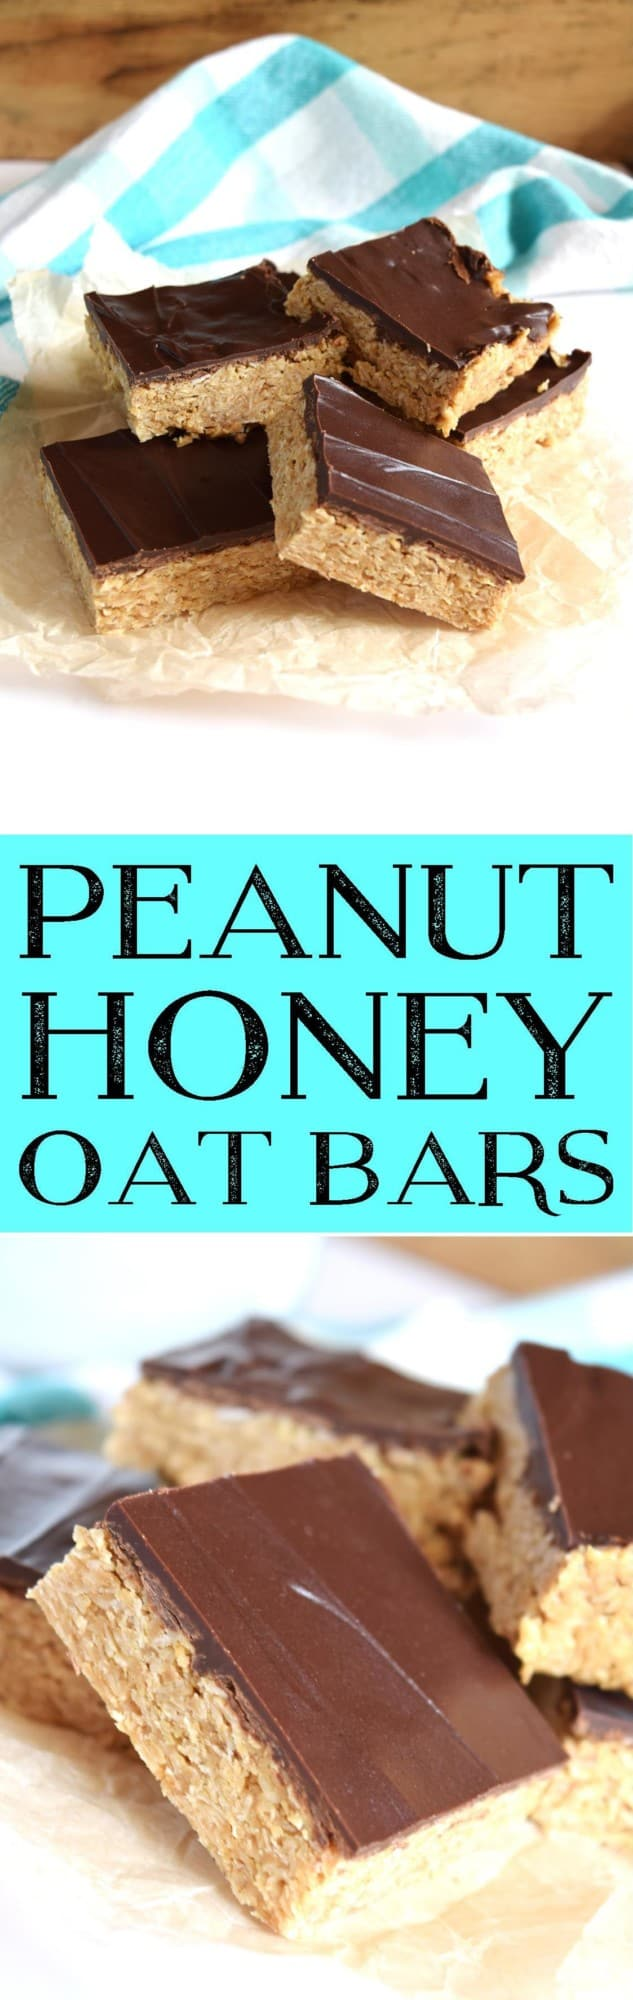 Peanut Honey Oat Bars